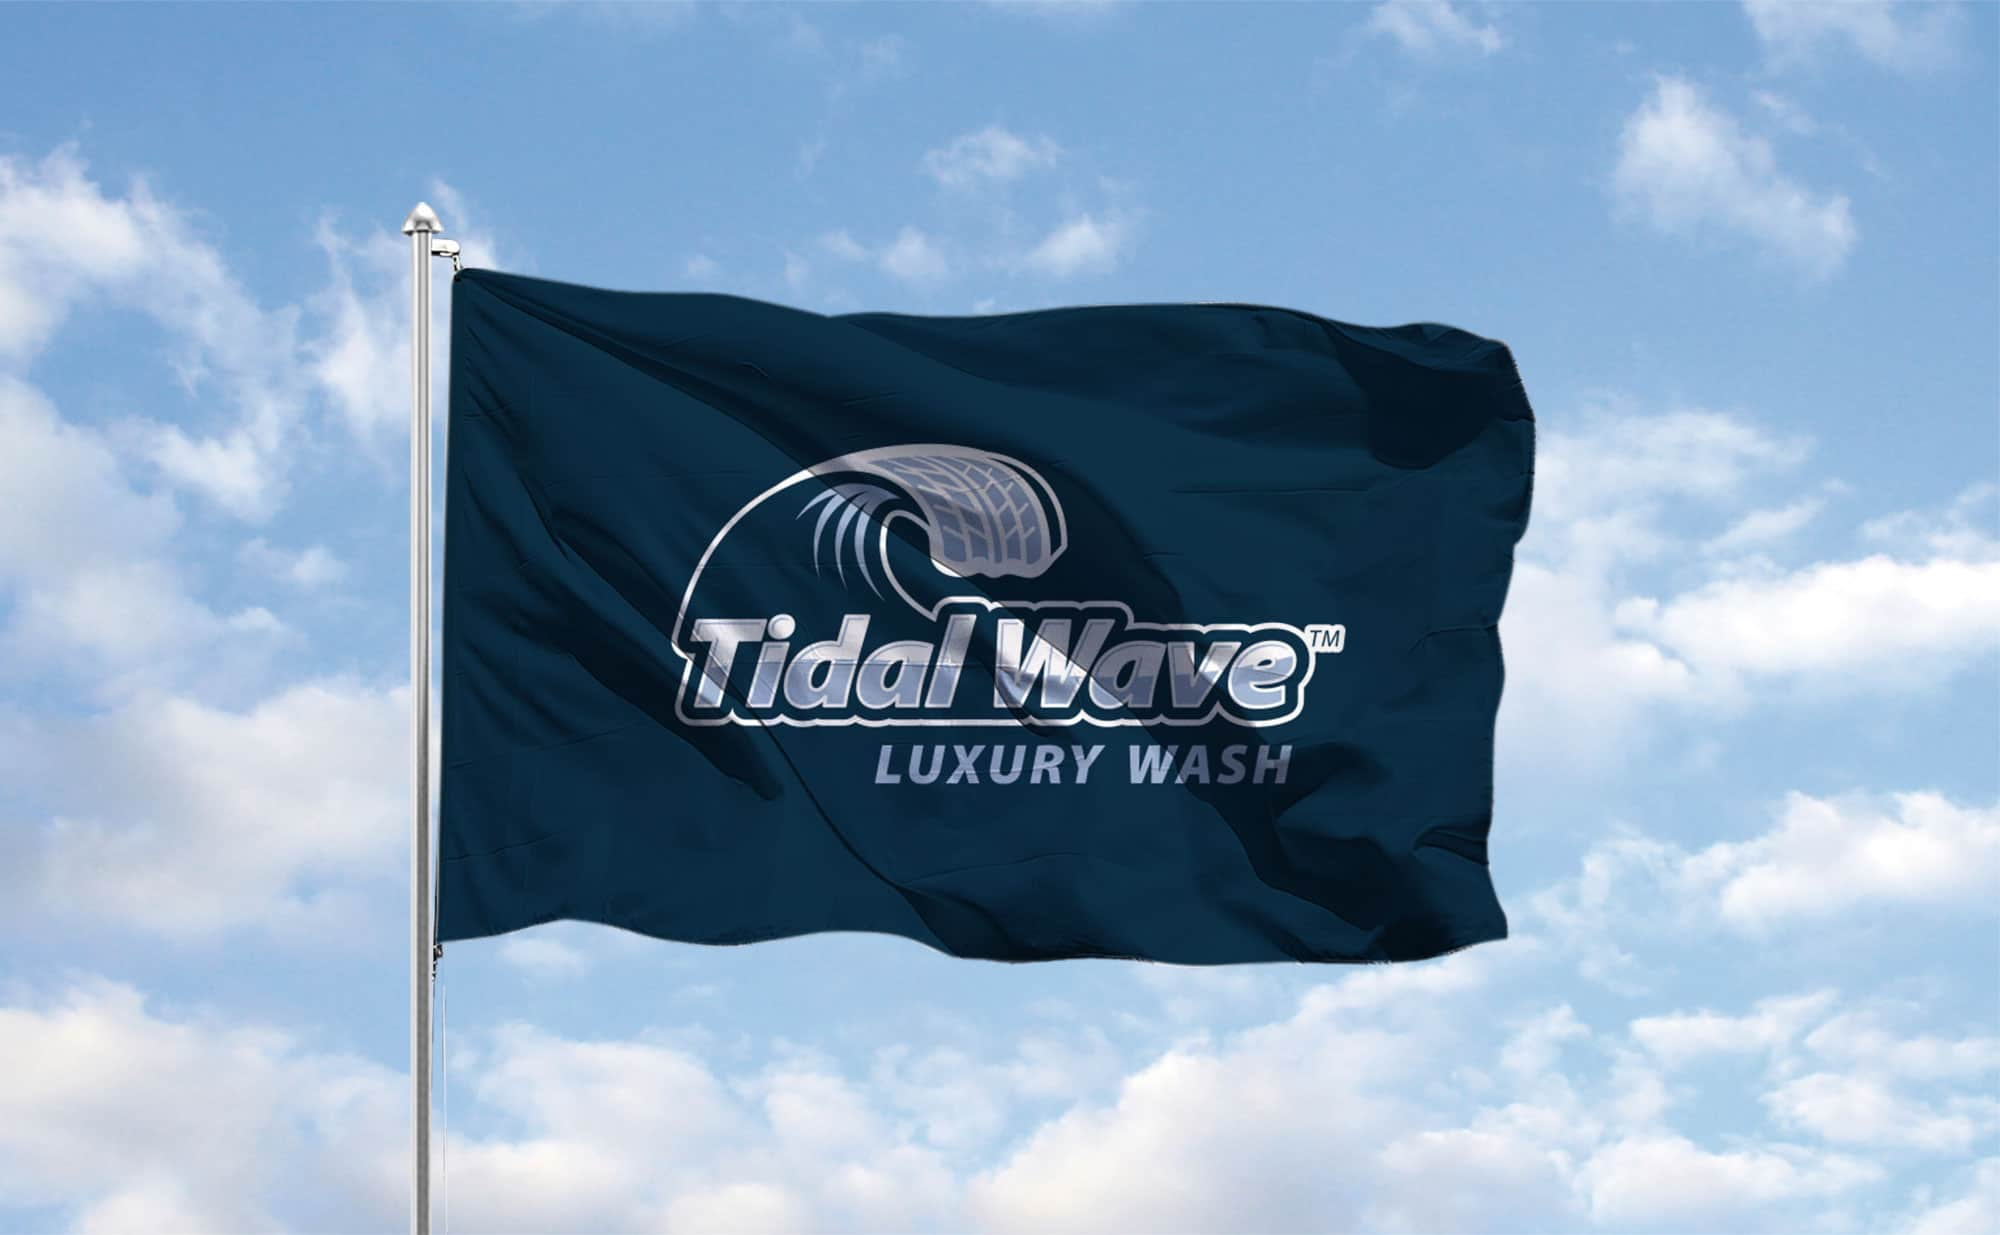 Tidal Wave Luxury Wash Branding Design By Visual Lure St